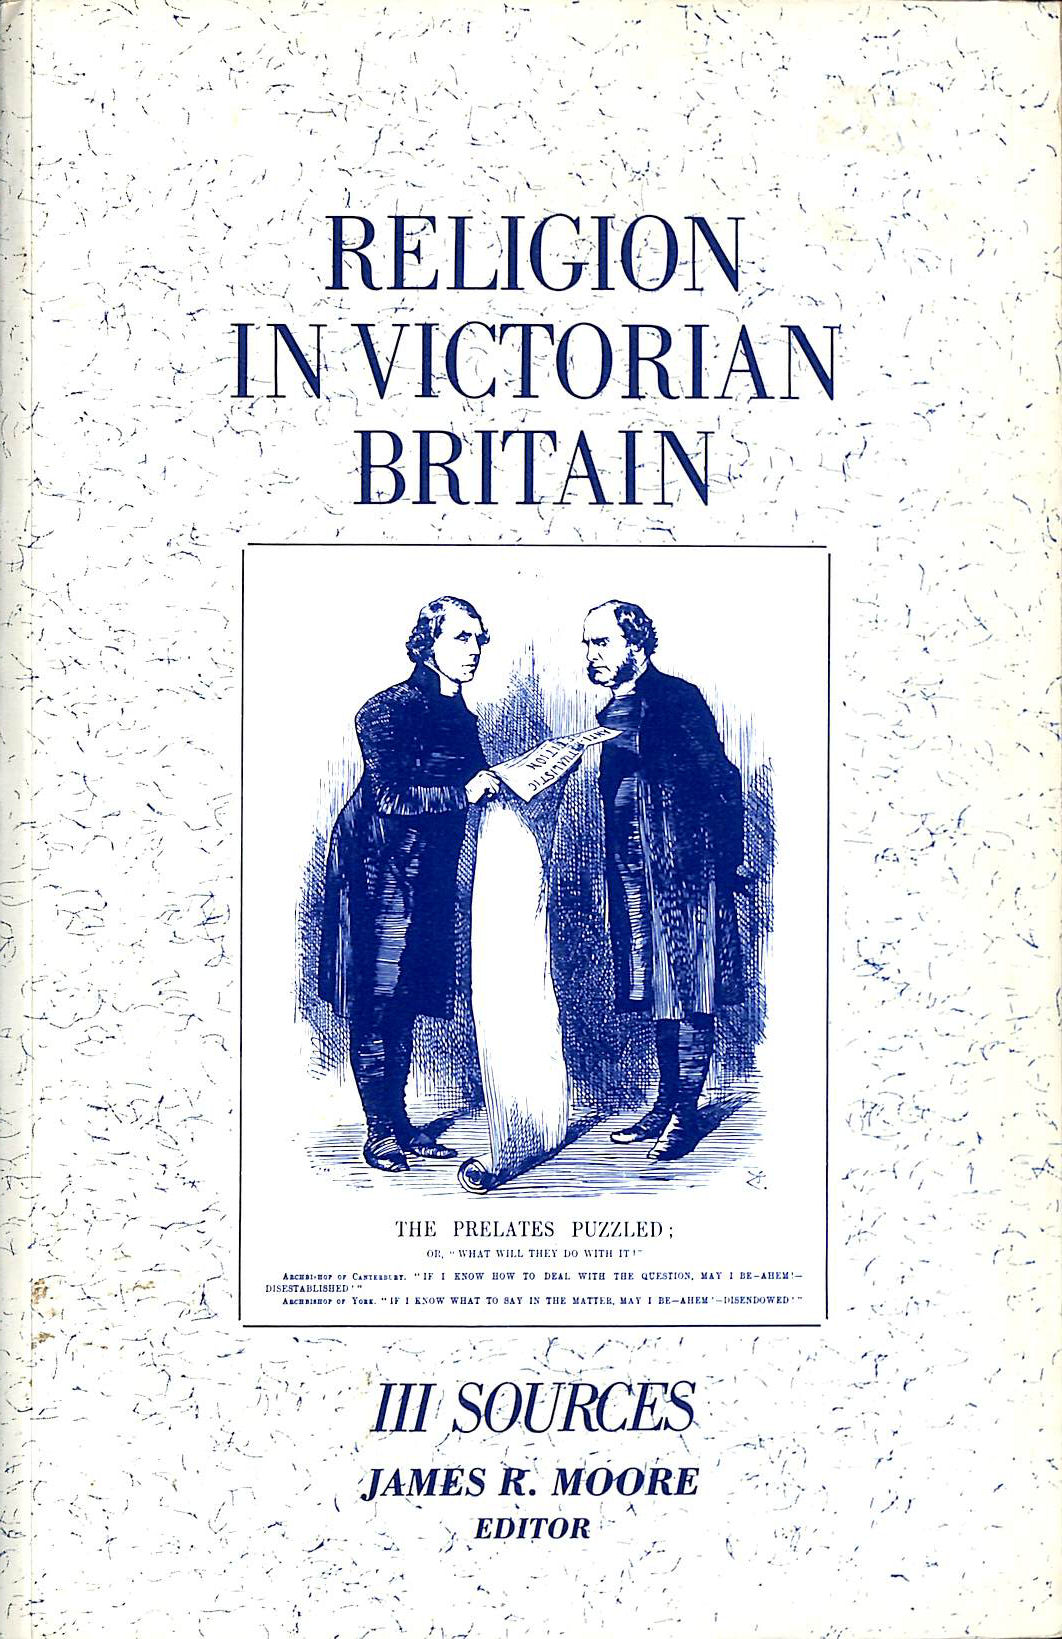 Image for Religion in Victorian Britain, Vol. III: Sources: Sources v. 3